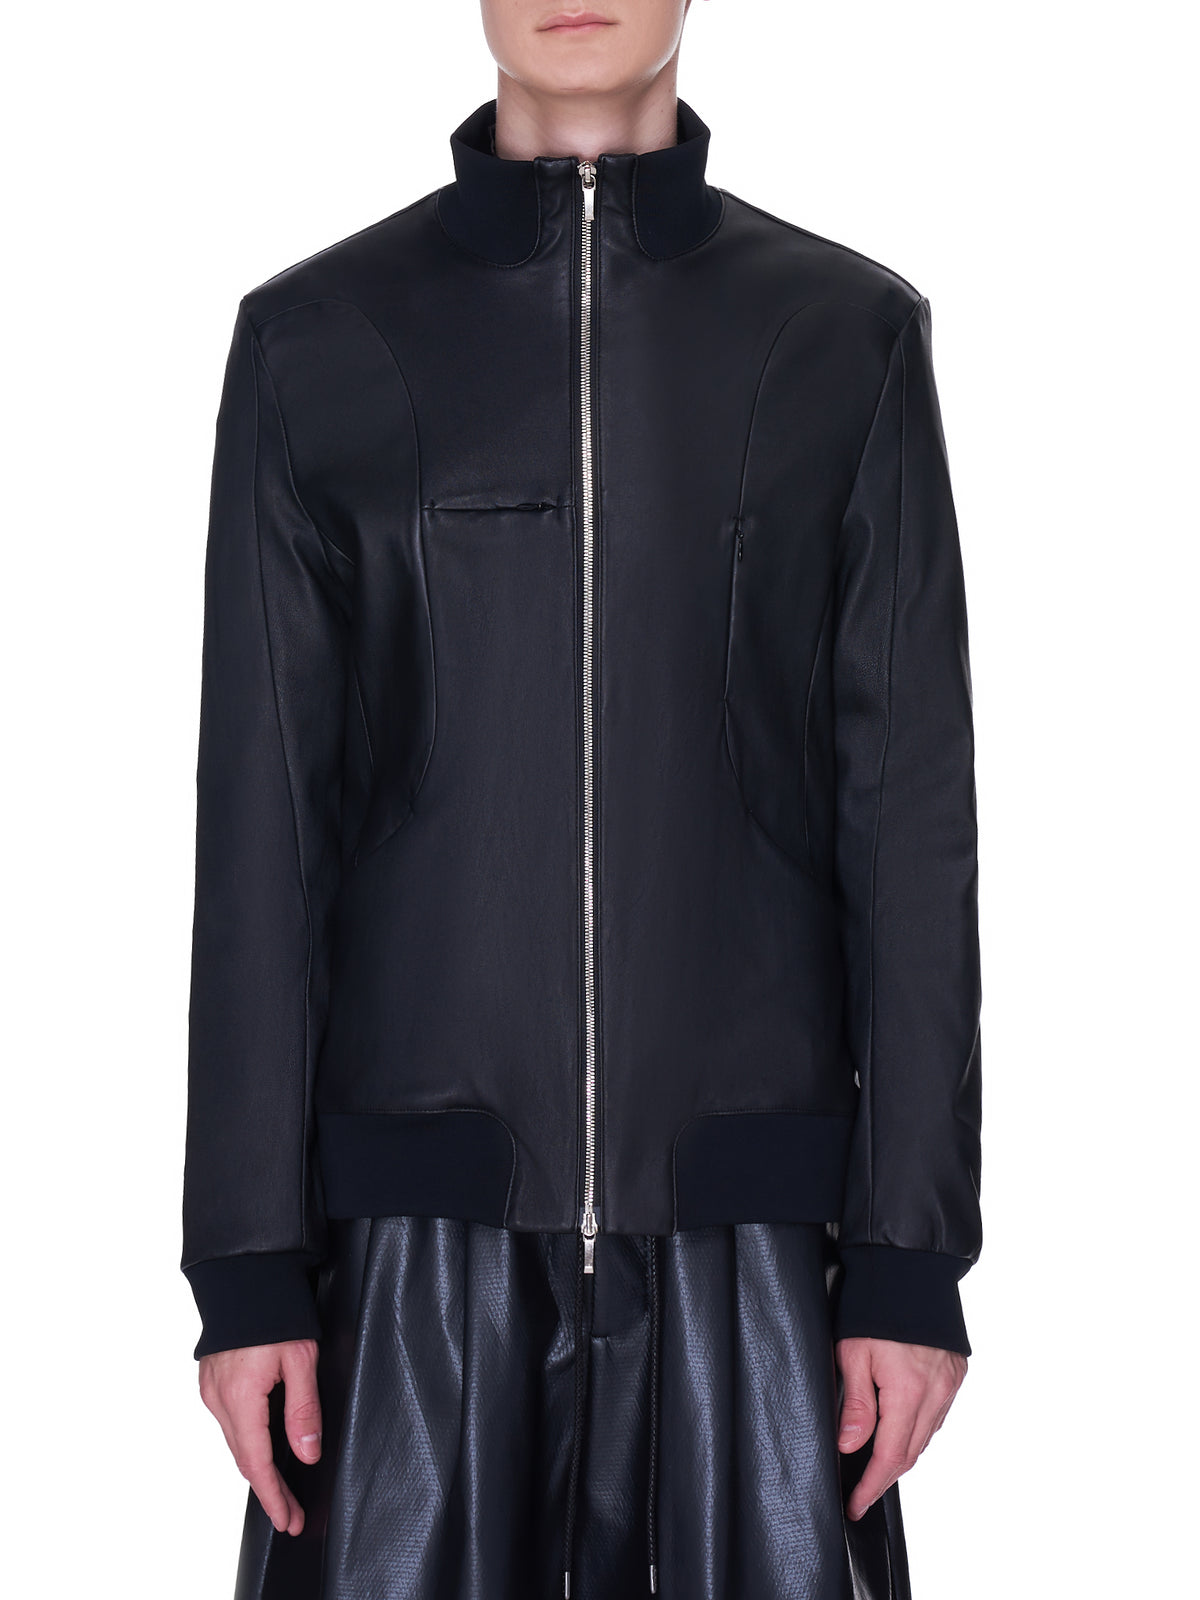 Attachment Leather Jacket | H.Lorenzo - front